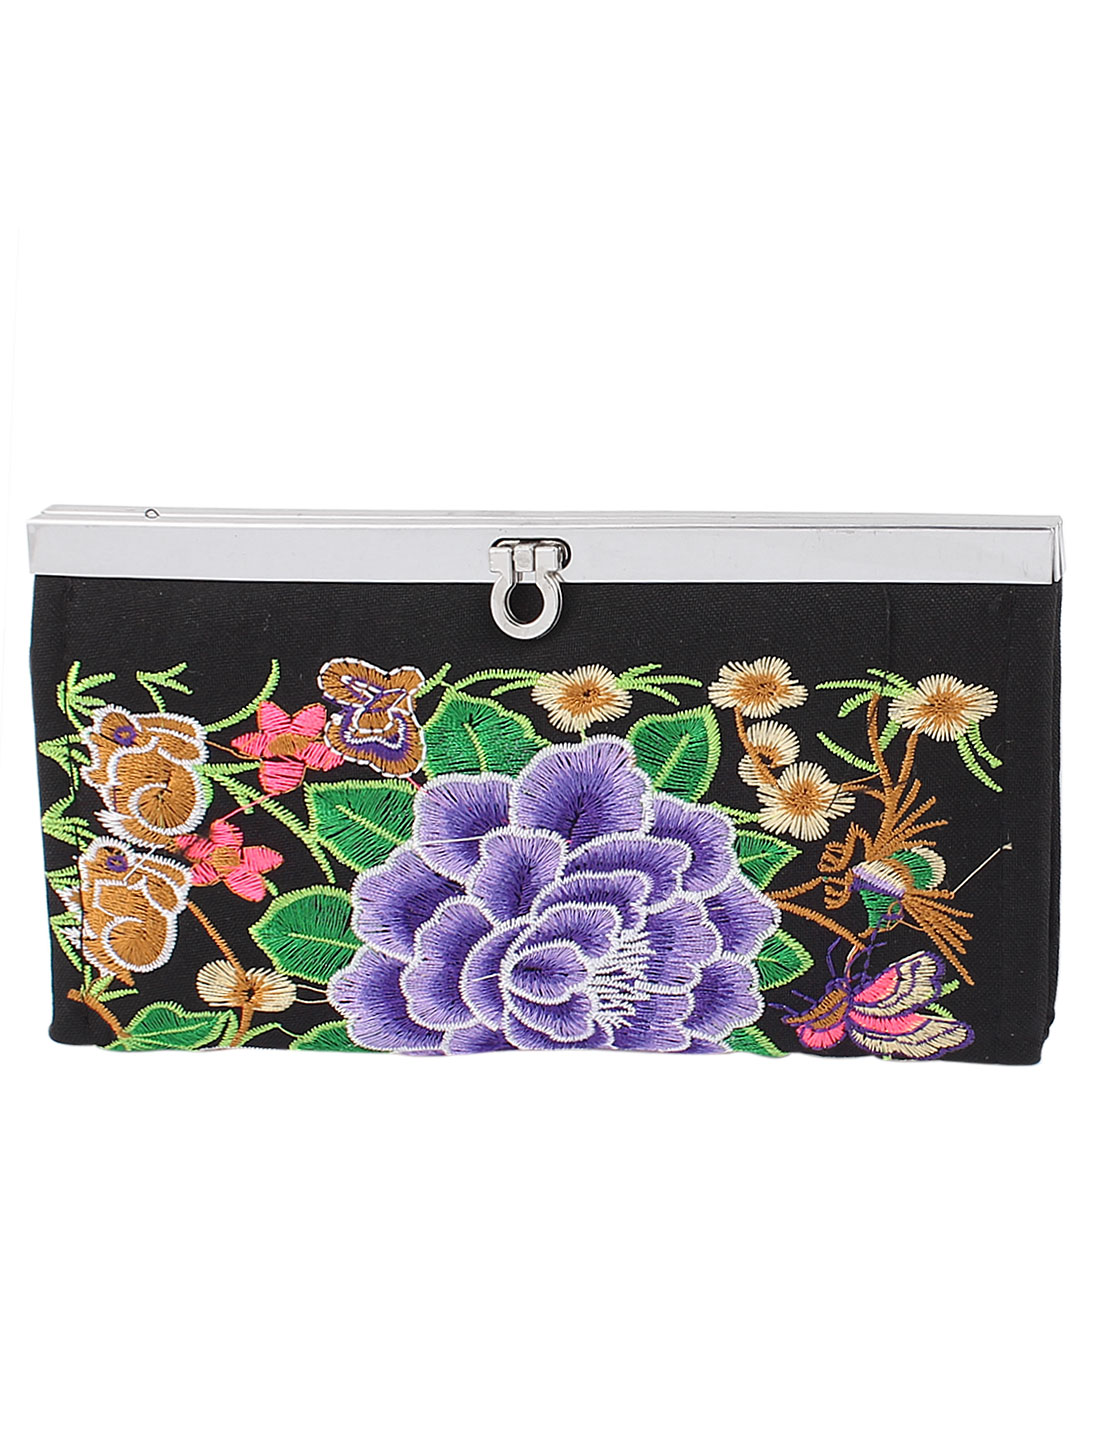 Ladies Embroider Floral Multi Compartment Flip Lock Wallet Purse Bag